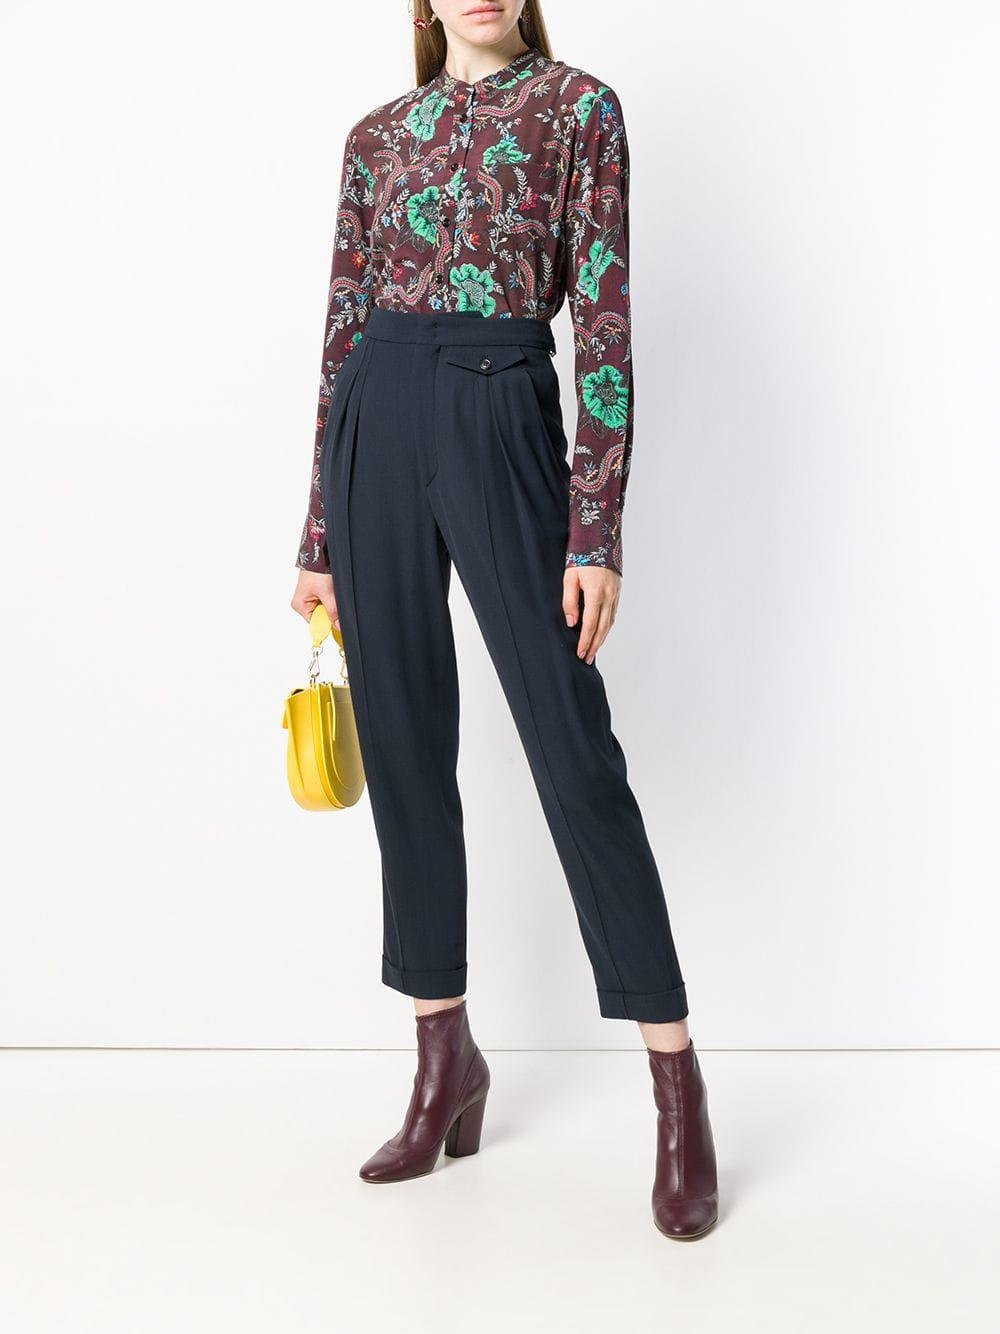 5b2cc0ad221cac Isabel Marant Rusak Printed Shirt in Red - Lyst